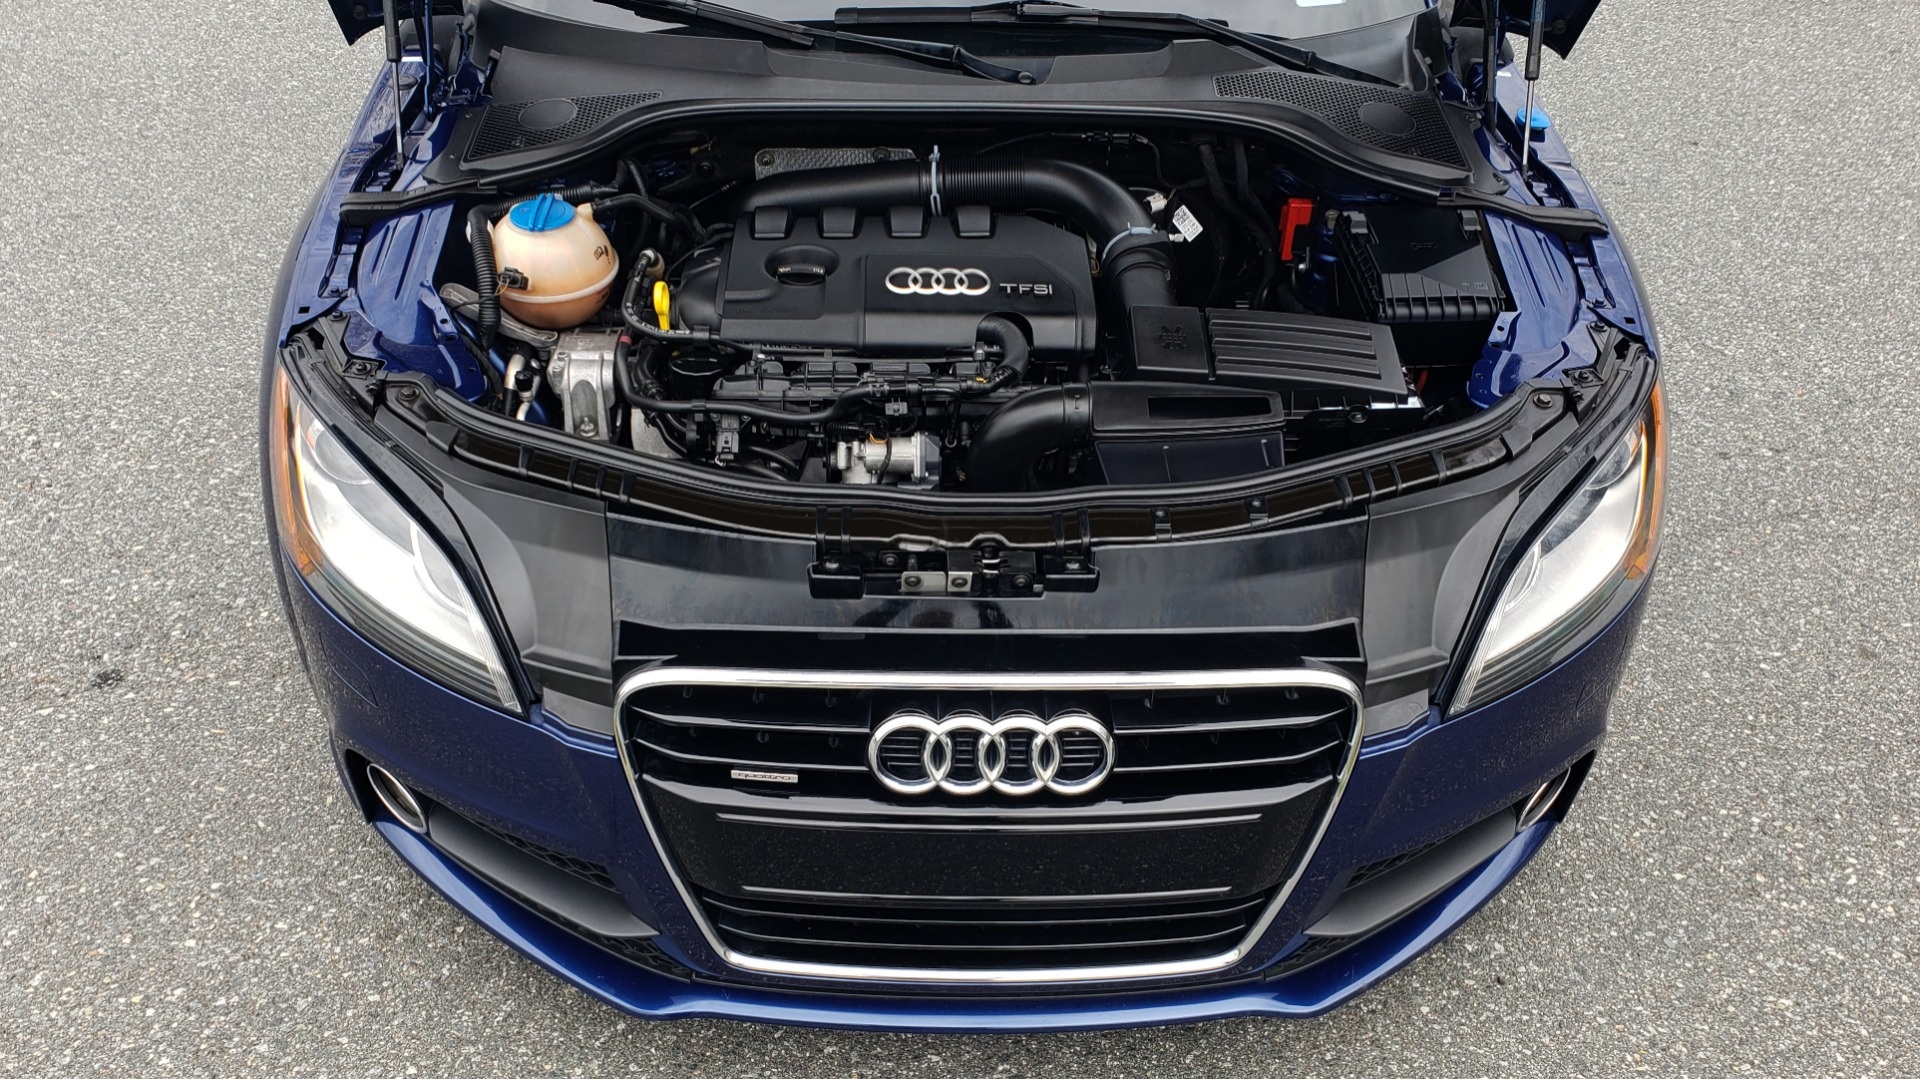 Used 2014 Audi TT 2.0T S-TRONIC / COUPE / AWD / LEATHER / HEATED SEATS for sale Sold at Formula Imports in Charlotte NC 28227 14